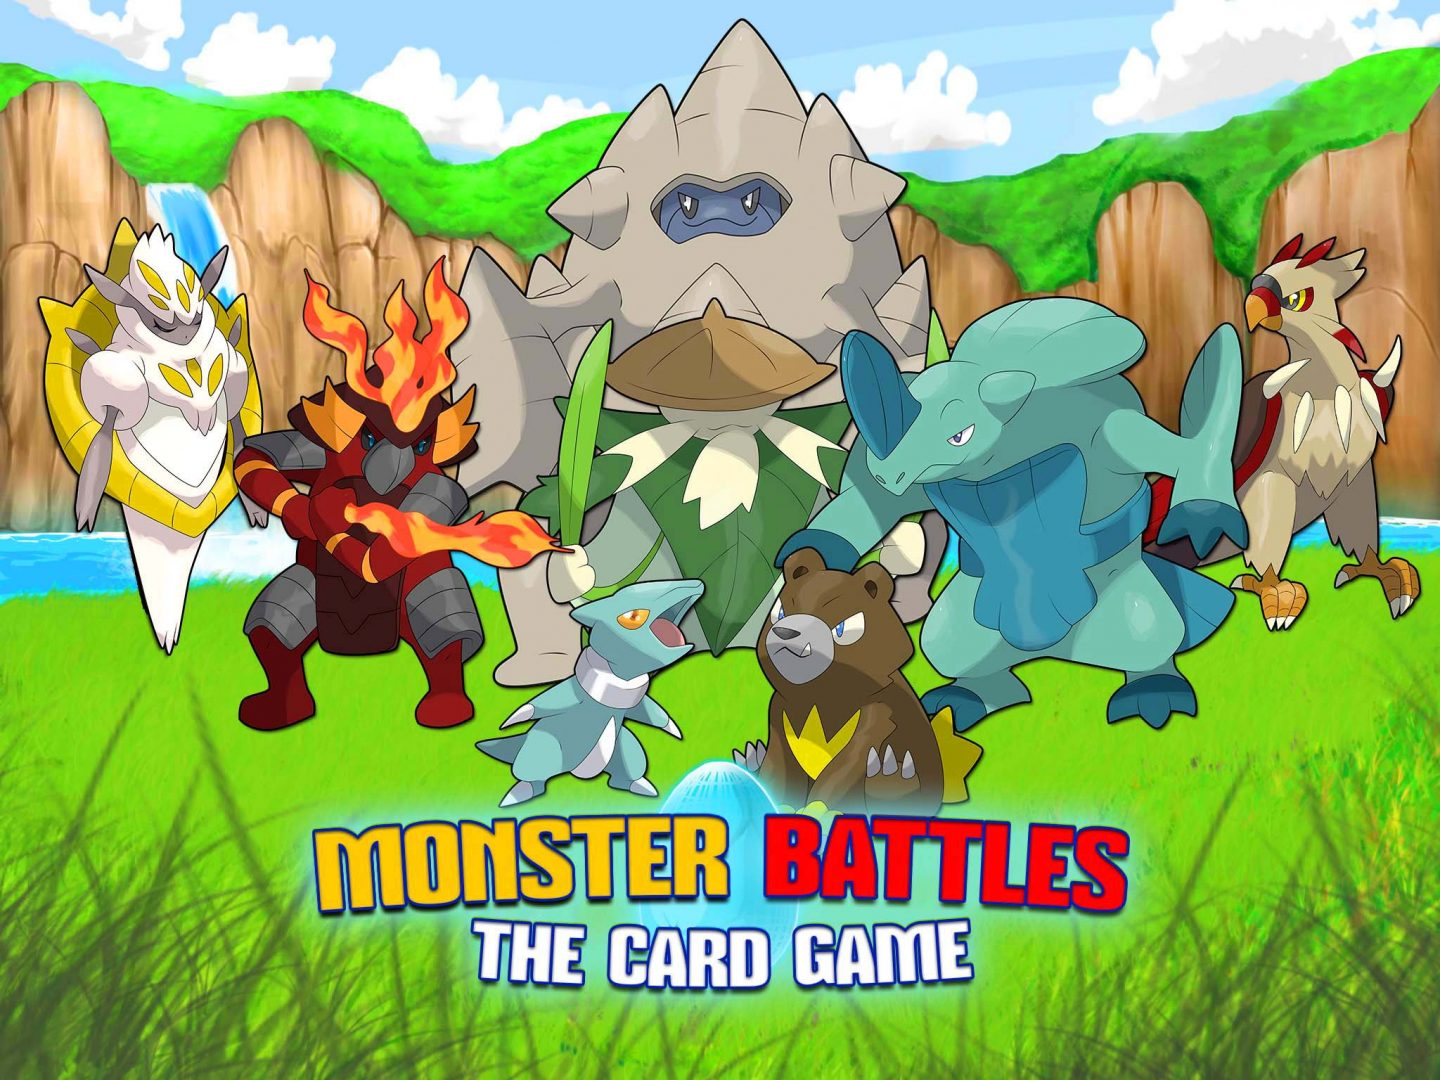 Monster Battles: The Card Game Released on iOS and Android